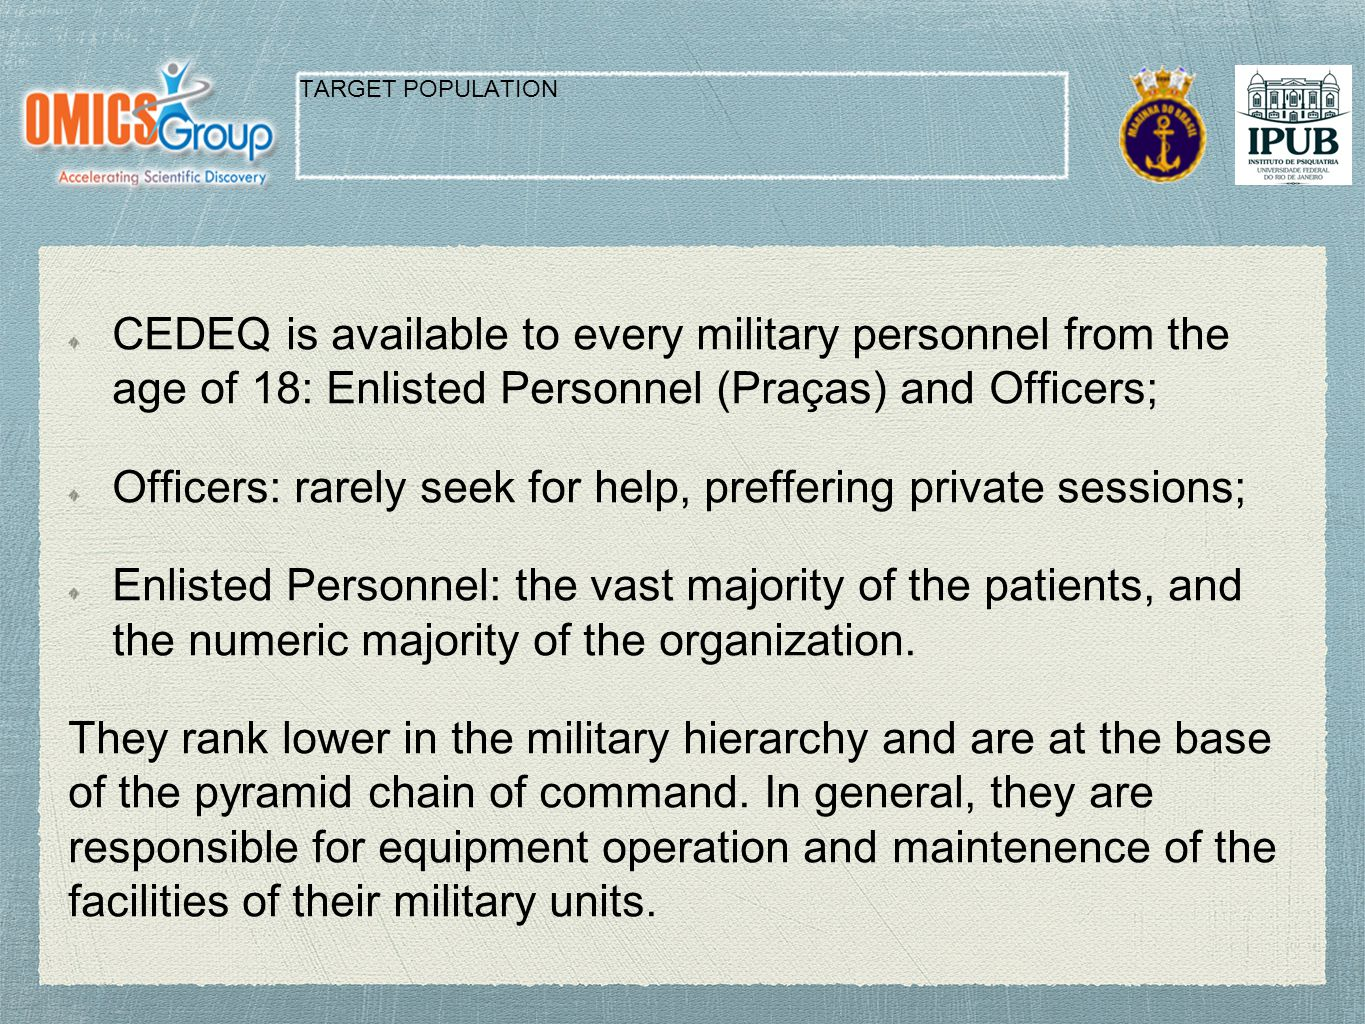 CEDEQ is available to every military personnel from the age of 18: Enlisted Personnel (Praças) and Officers; Officers: rarely seek for help, preffering private sessions; Enlisted Personnel: the vast majority of the patients, and the numeric majority of the organization.